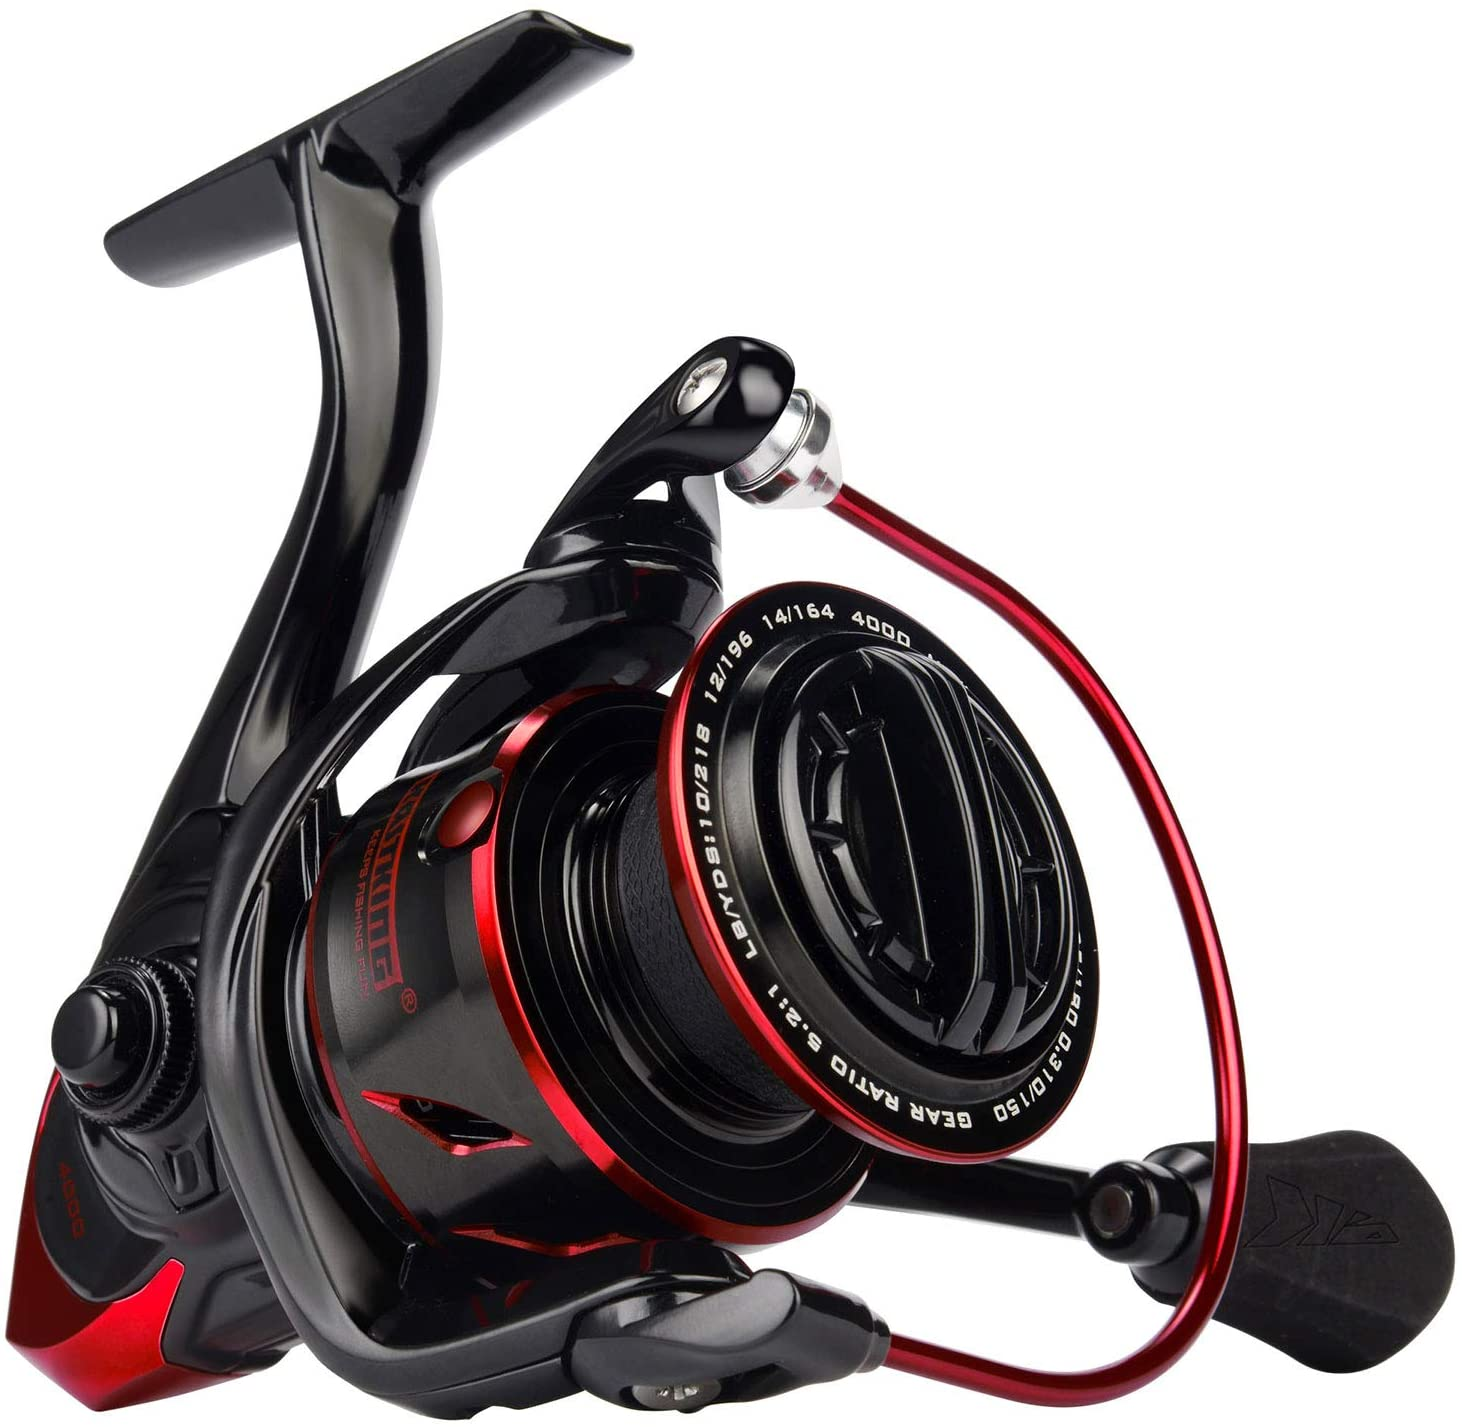 KastKing Sharky III Spinning Reel Review